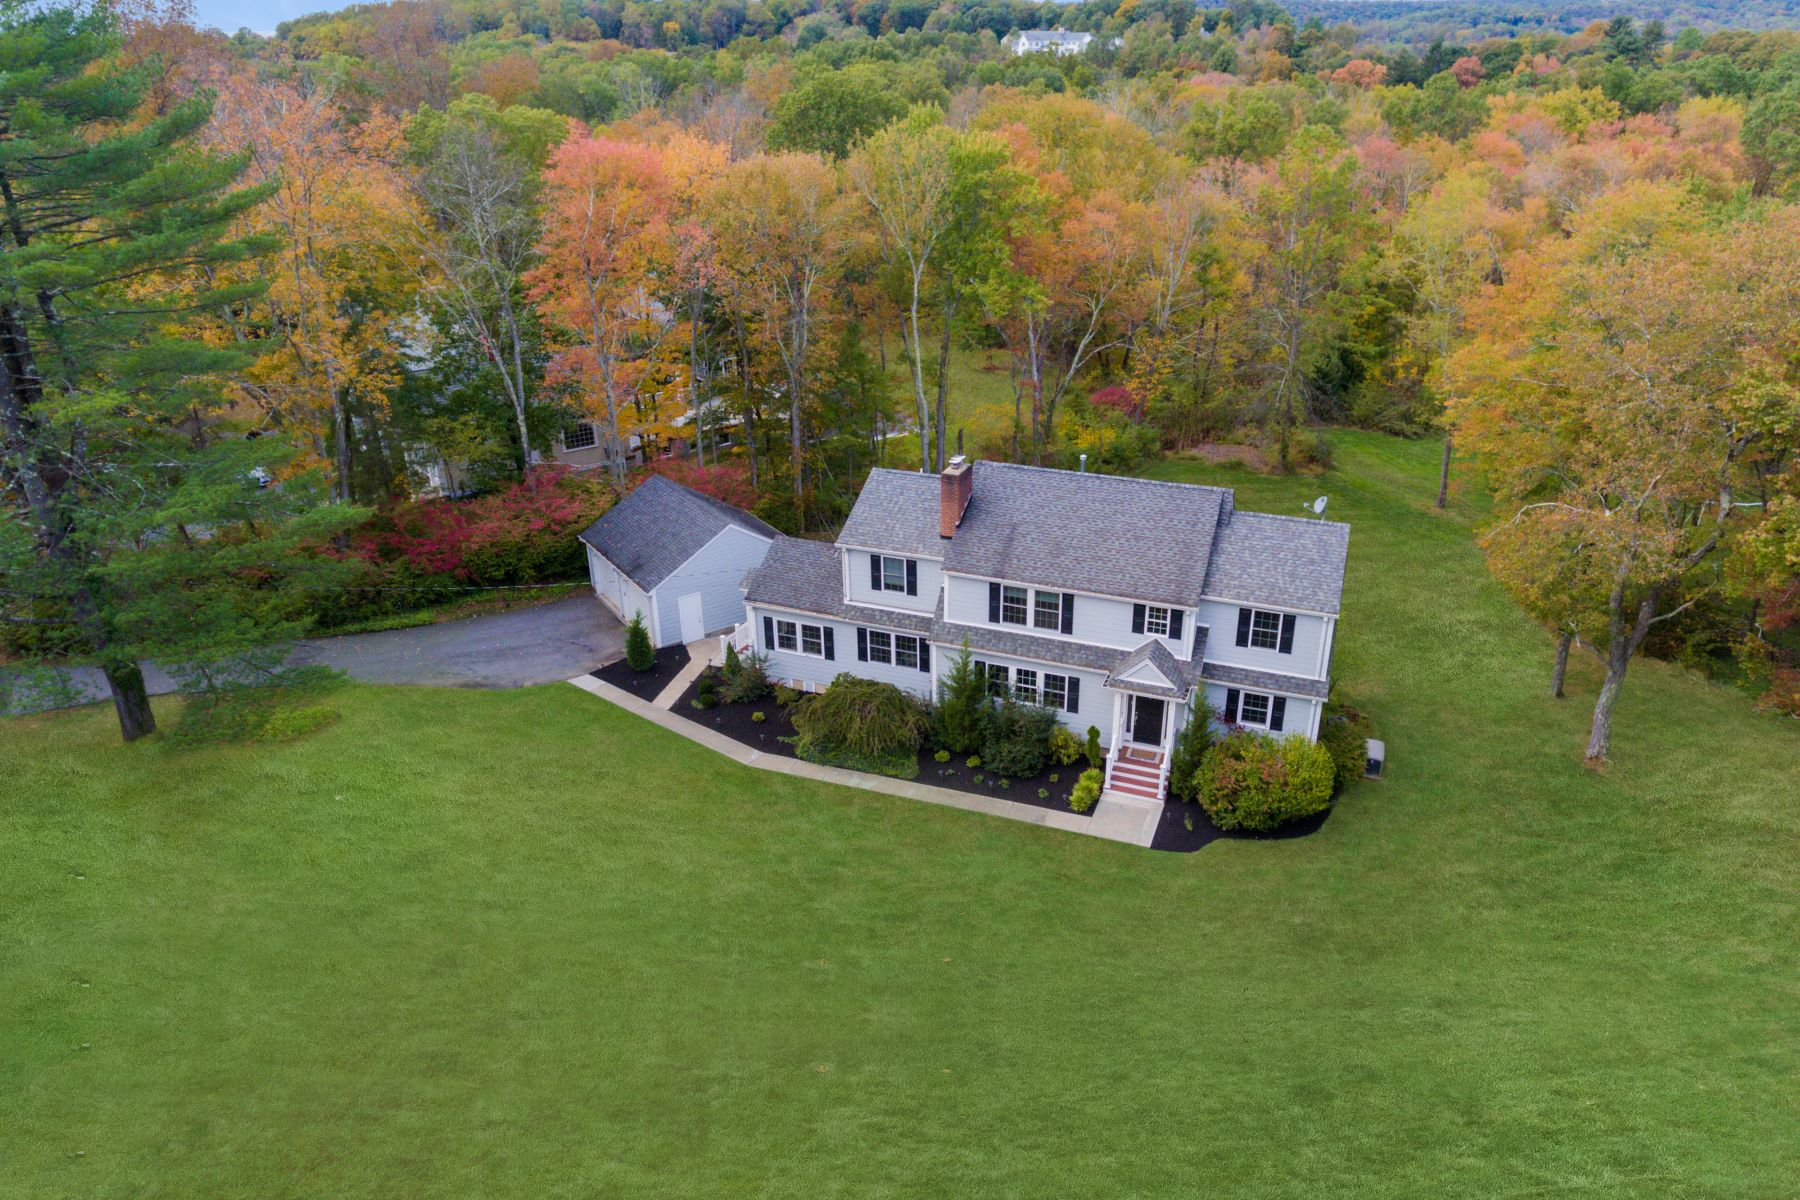 Single Family Homes for Sale at Washington Valley Colonial 7 Doe Hill Road, Morristown, New Jersey 07960 United States